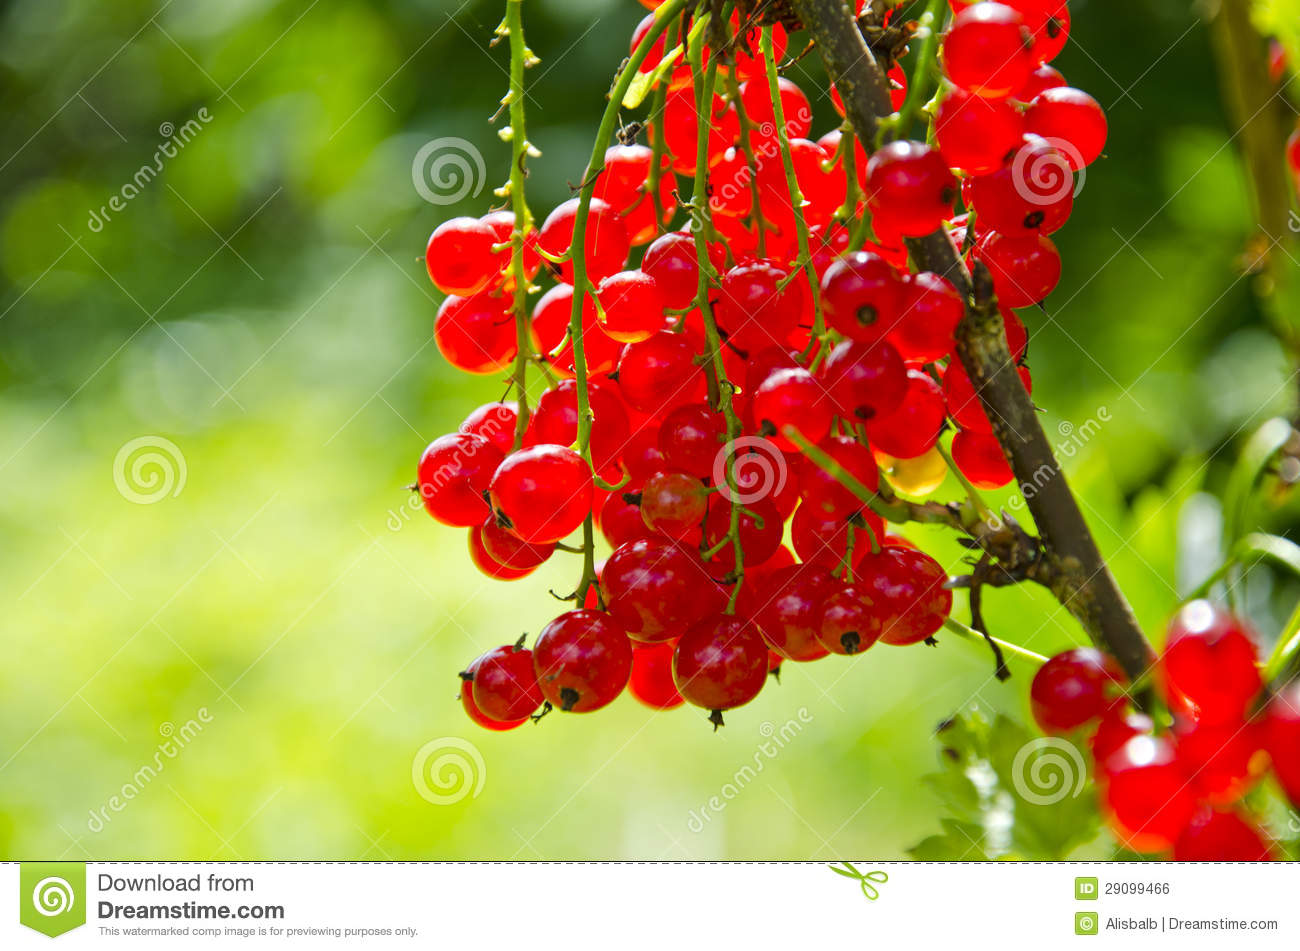 Redcurrant (Ribes Rubrum) Berry Bunch Royalty Free Stock Image.